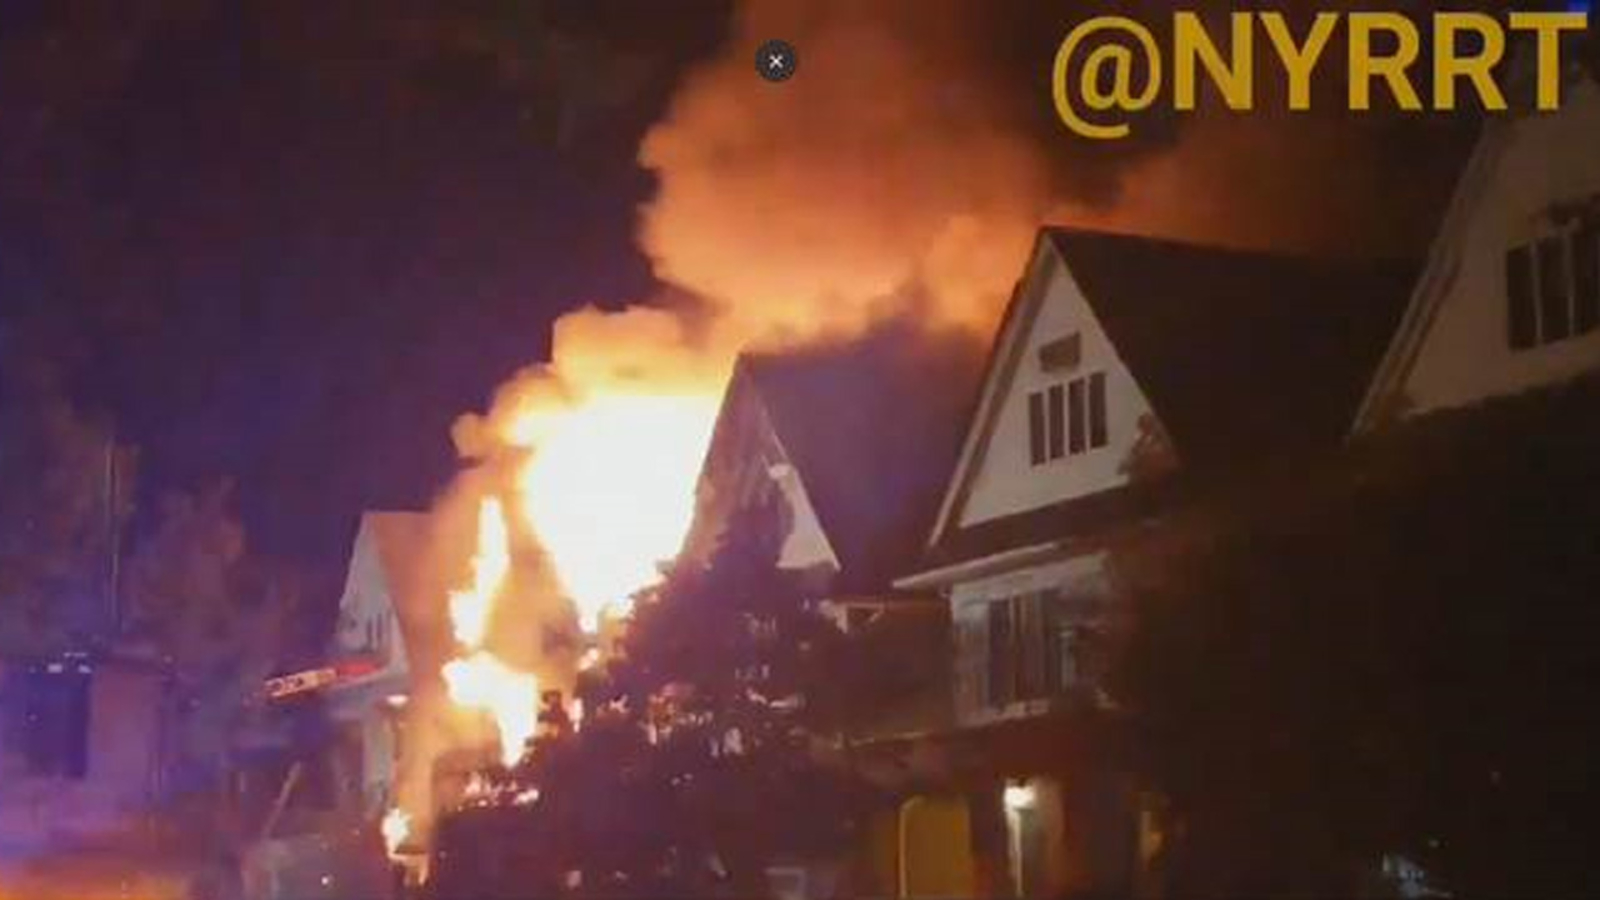 Man charged in connection with fire that targeted Brooklyn rabbi's home